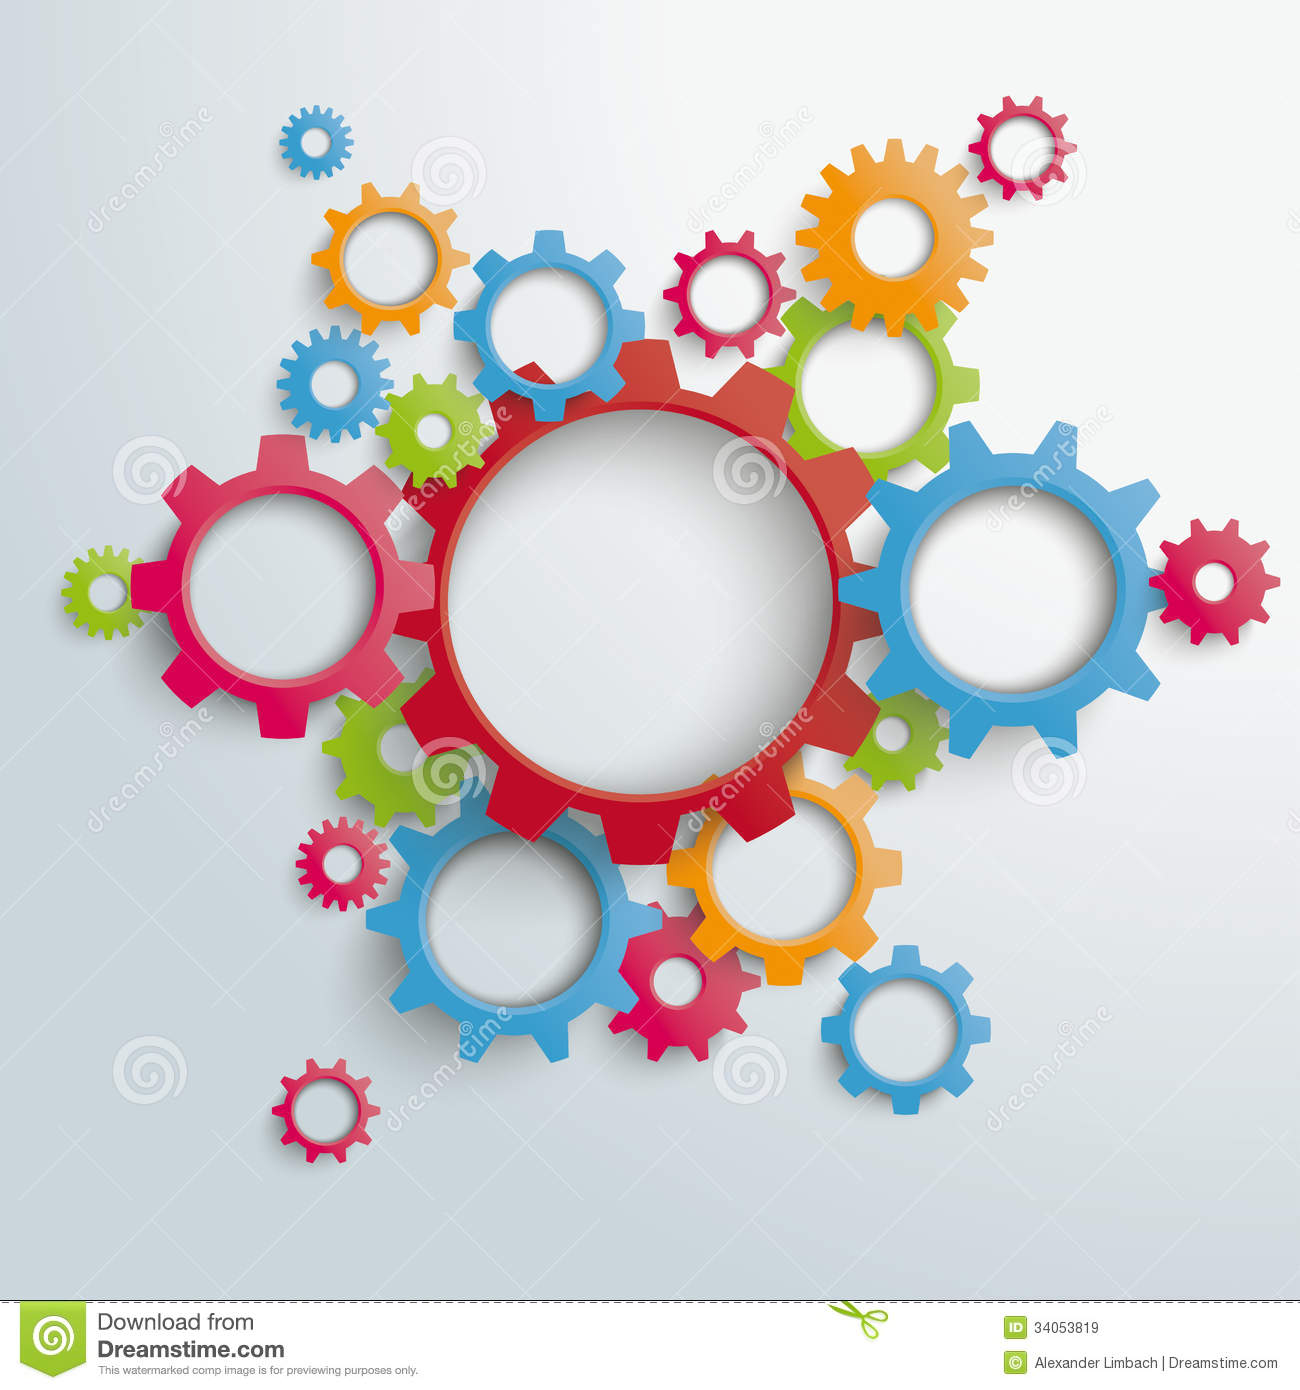 Infographic design on the grey background eps 10 vector file - Big Machine Colored Gears Piad Royalty Free Stock Images